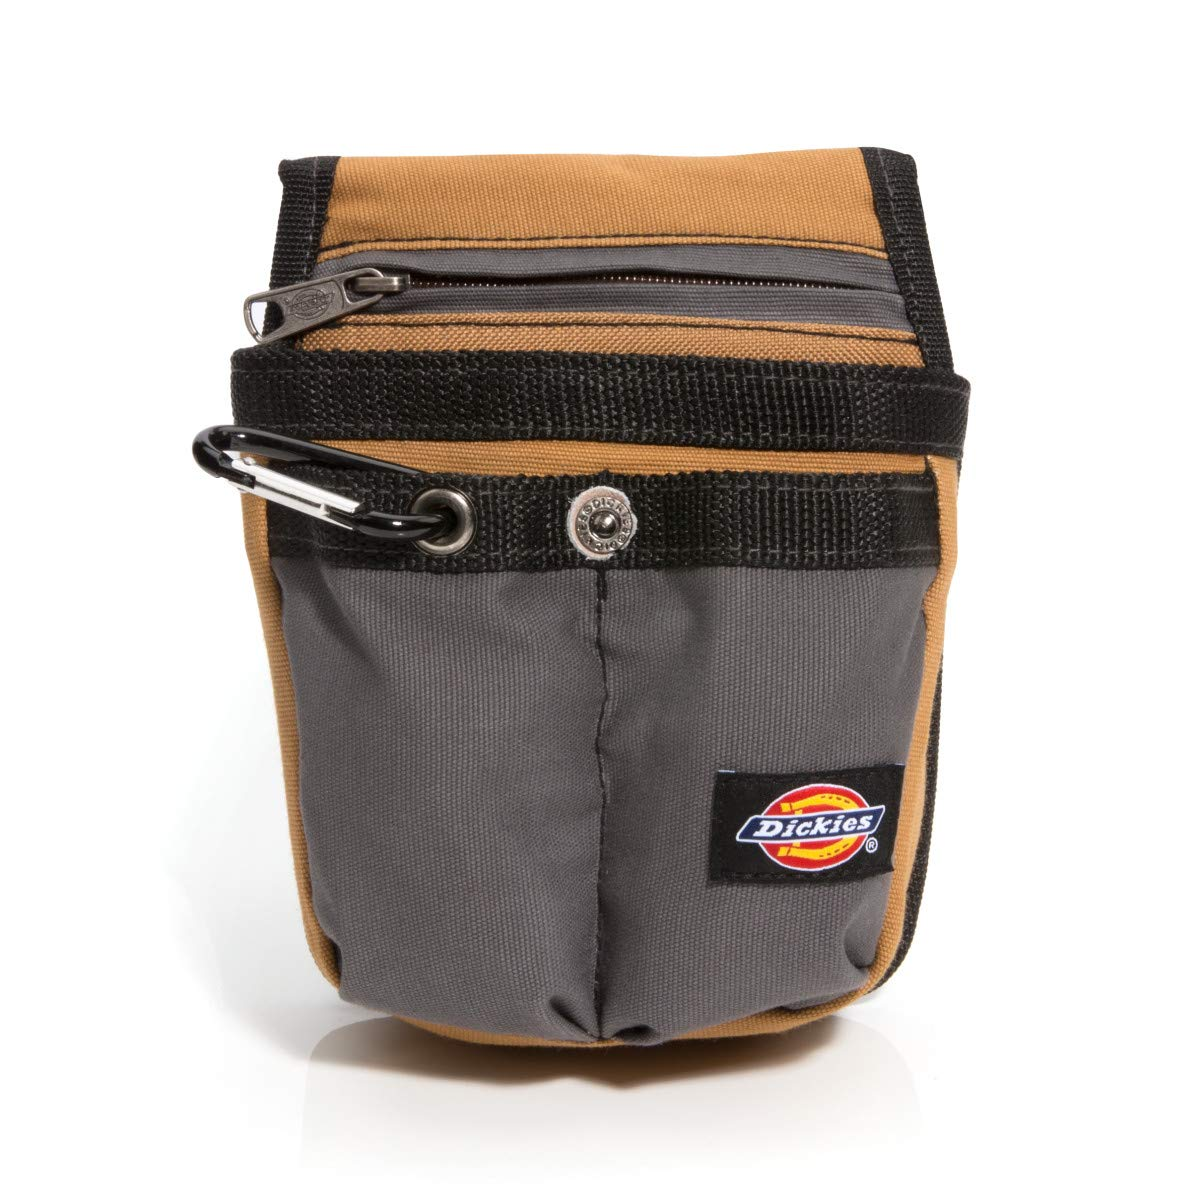 Dickies Work Gear 57005 Grey/Tan Tool Pouch with Security Zipper Pocket